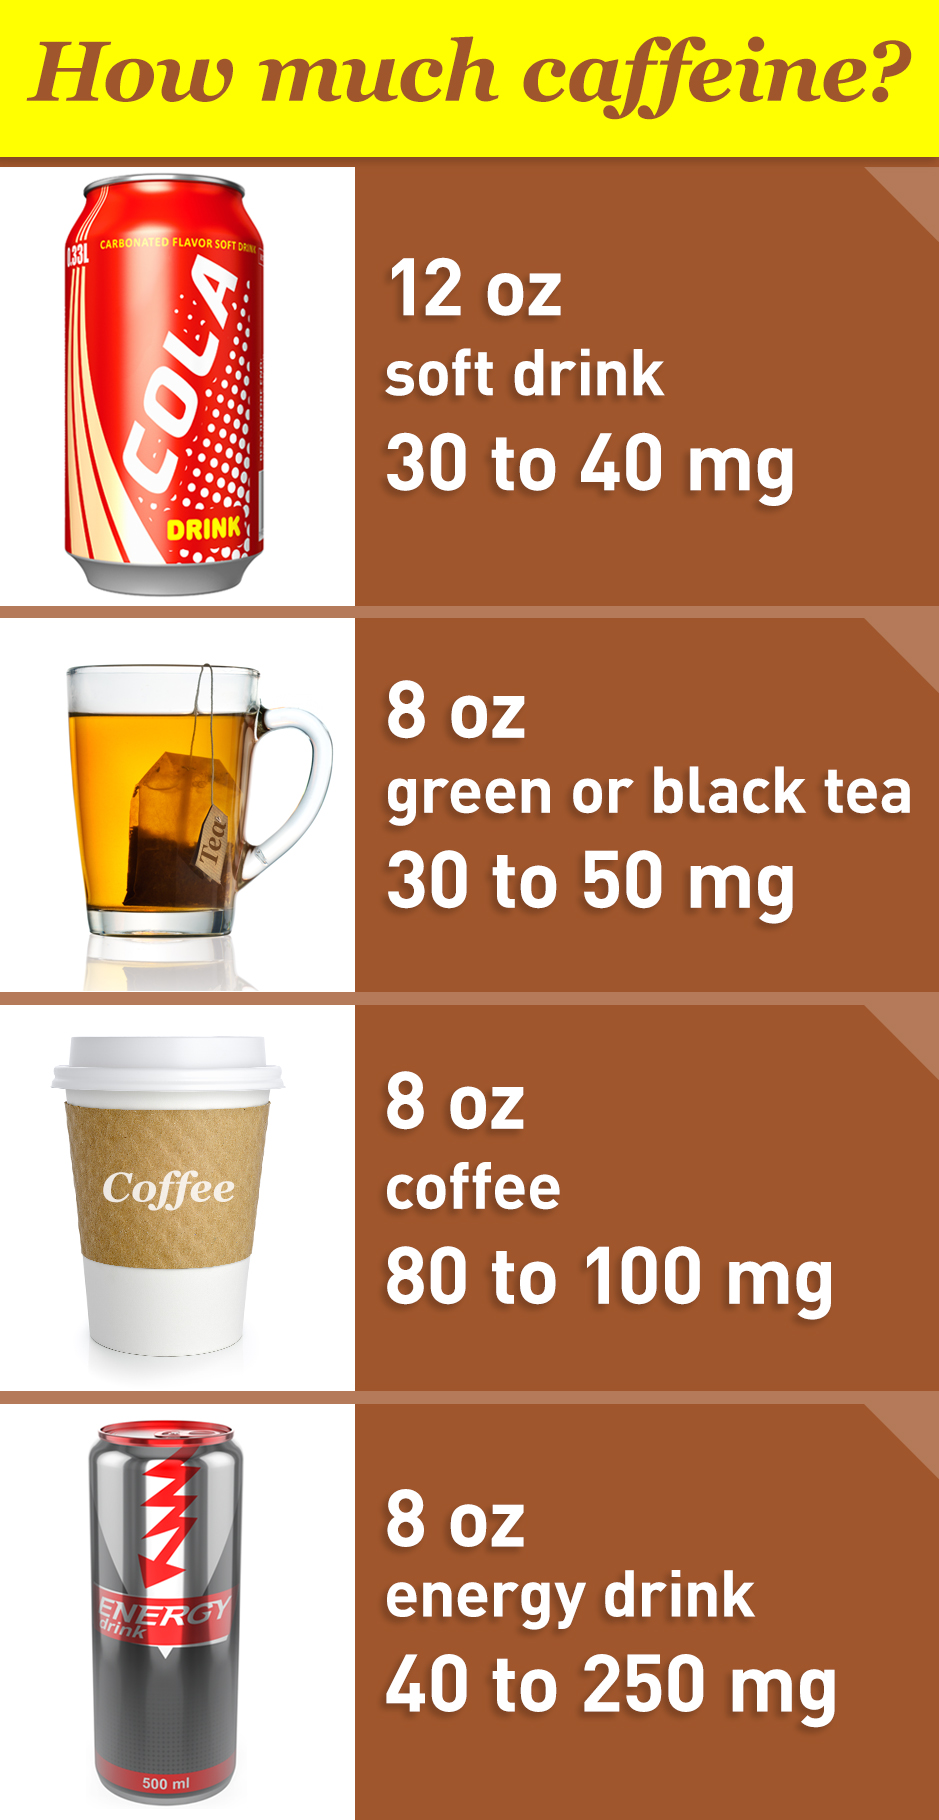 How much caffeine is in these beverages?